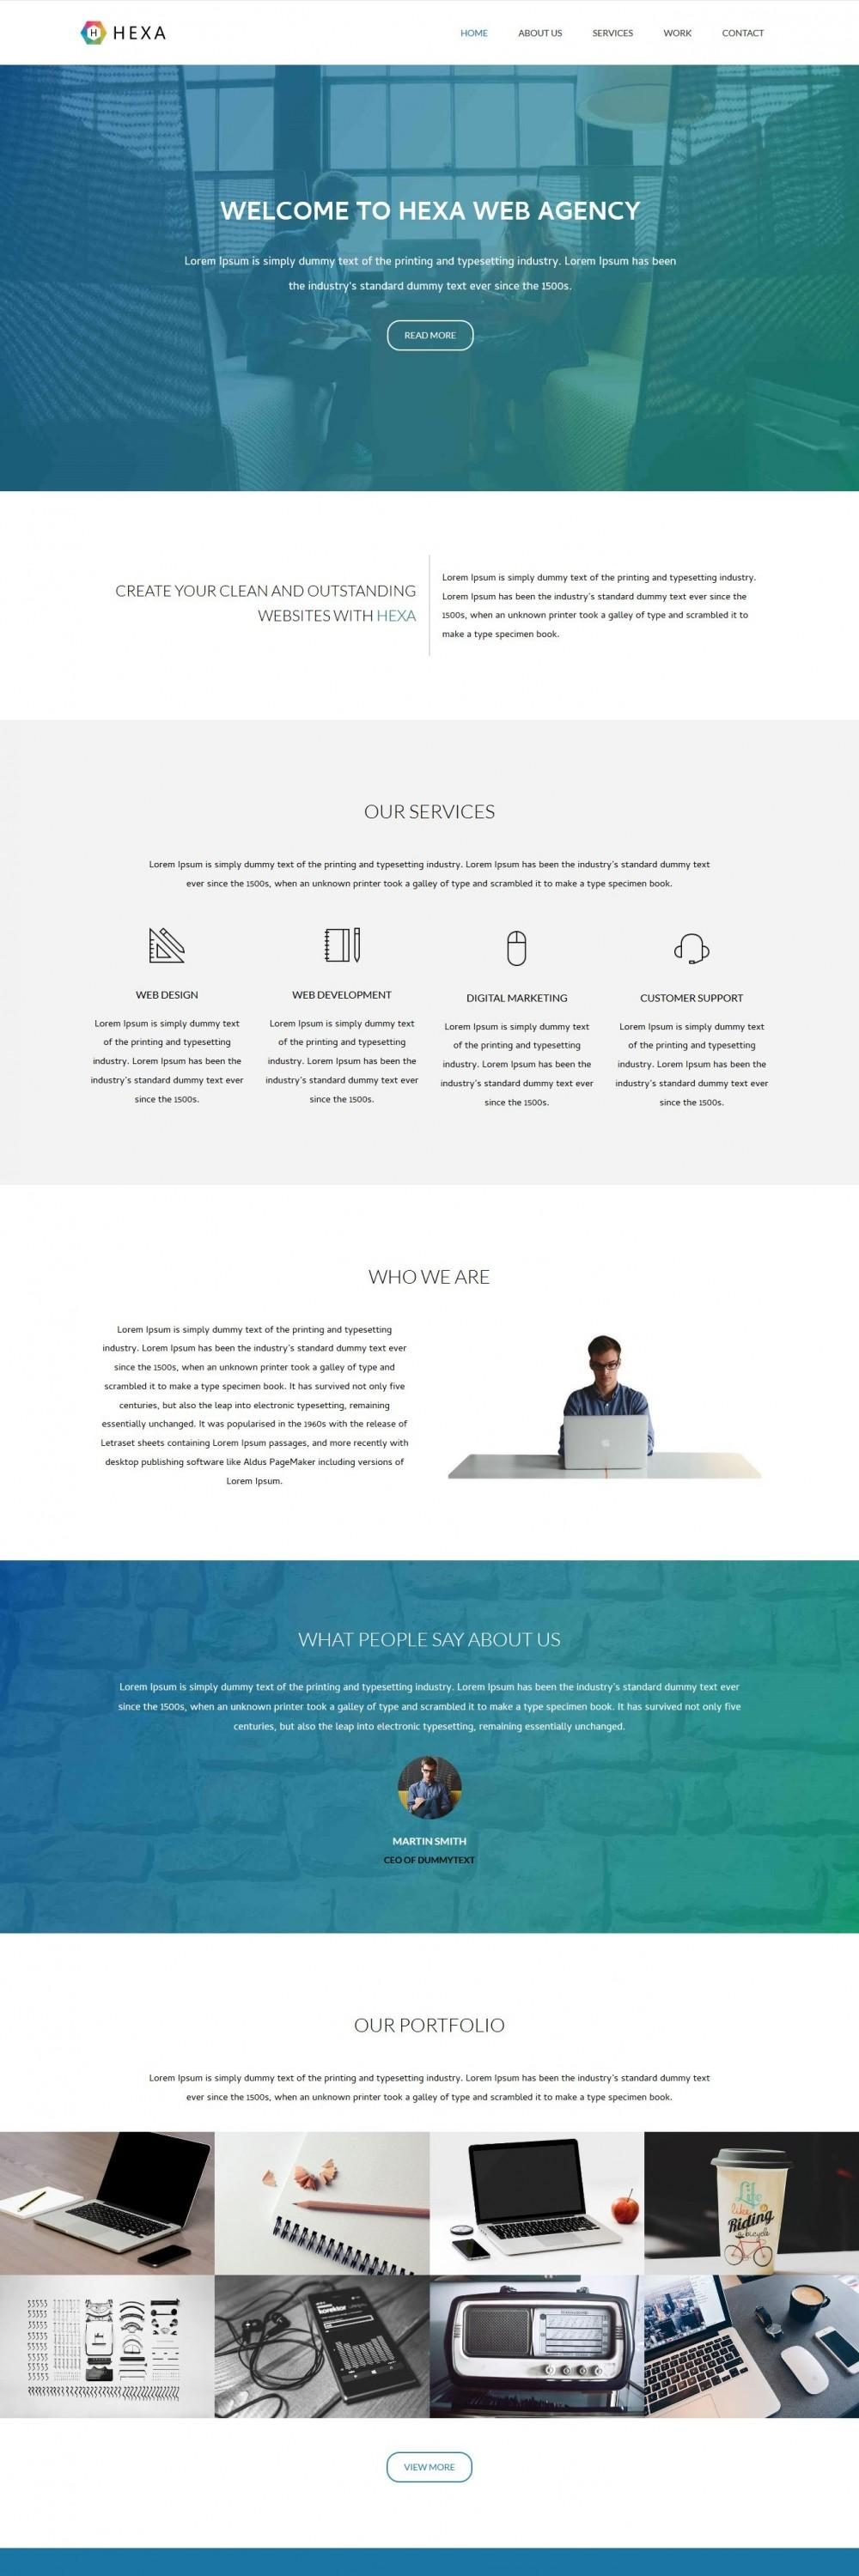 Hexa - Web Agency Joomla Template